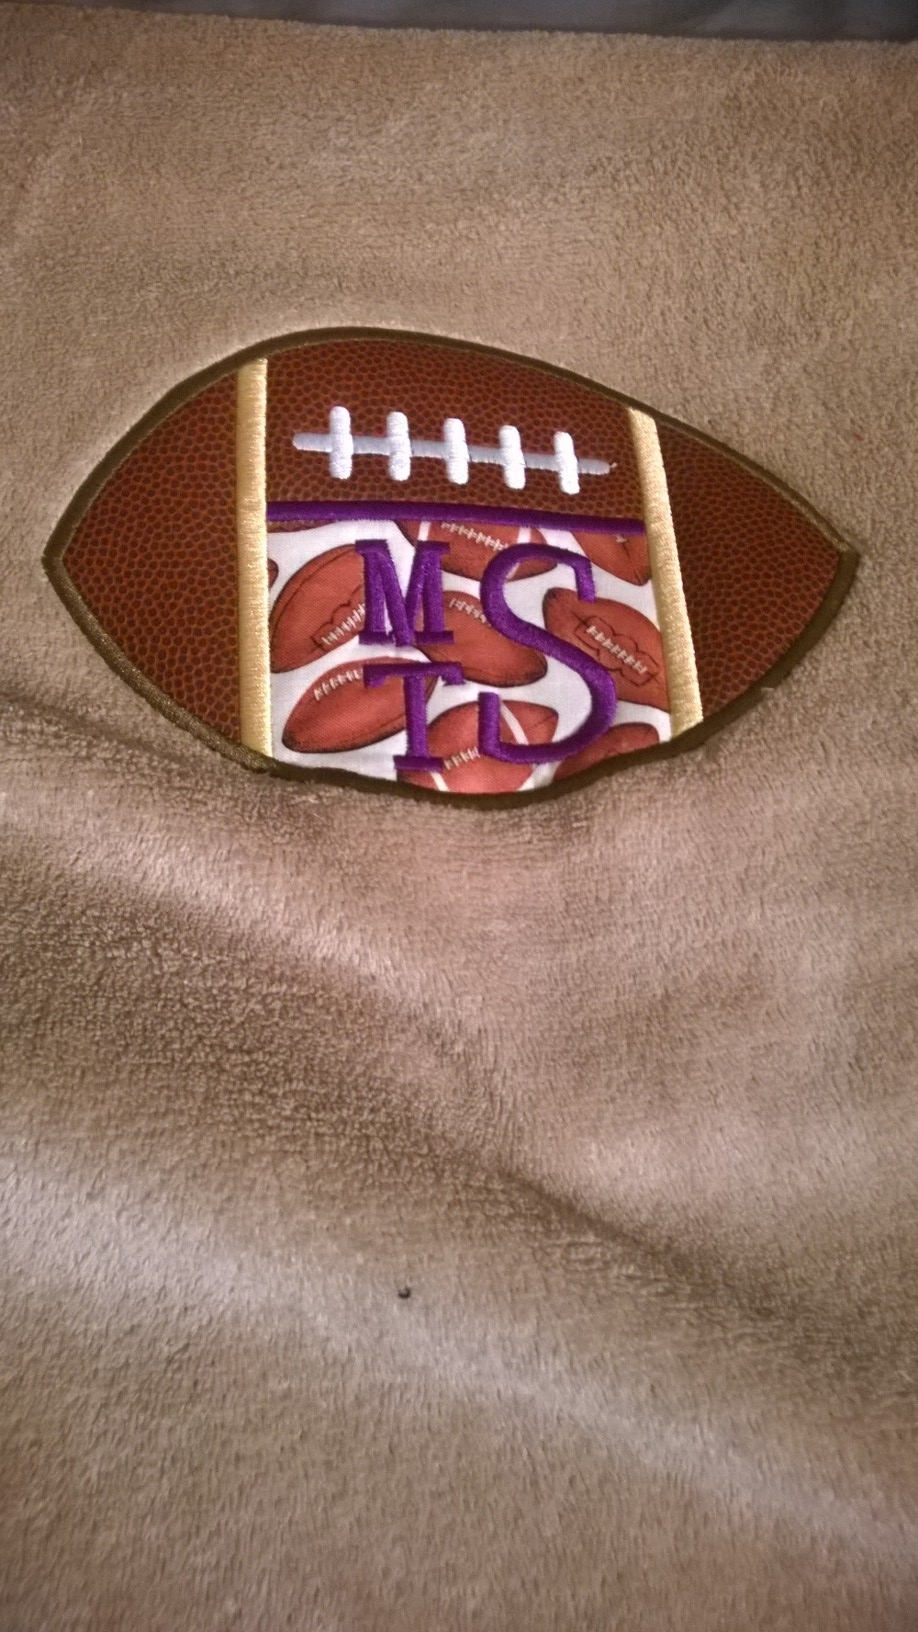 Blanket-football monogram